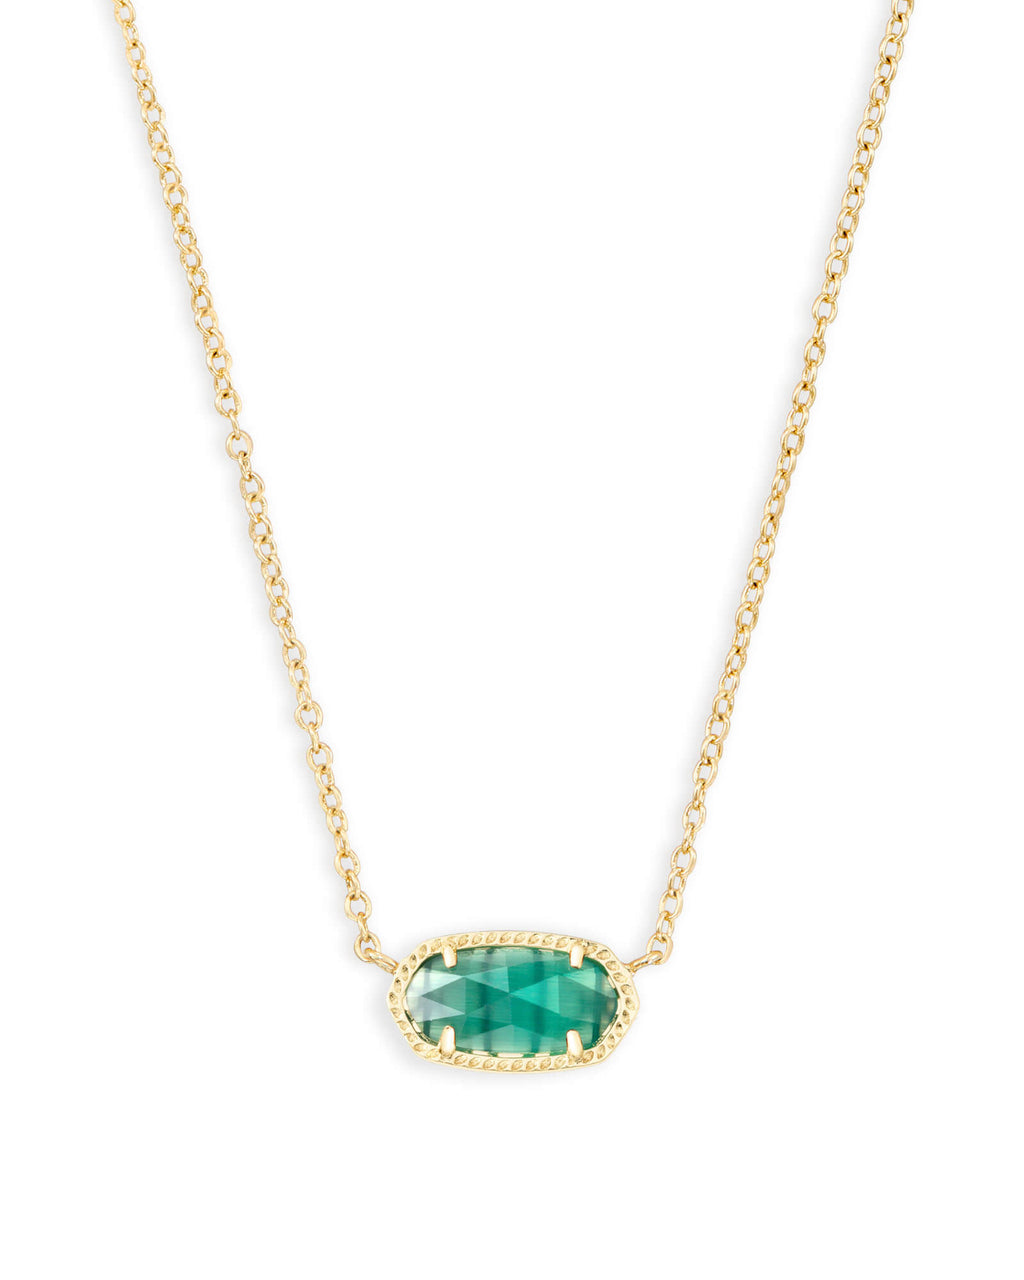 Kendra Scott Elisa Gold Pendant Necklace In Emerald Cat's Eye May Birthstone - Fly Boutique